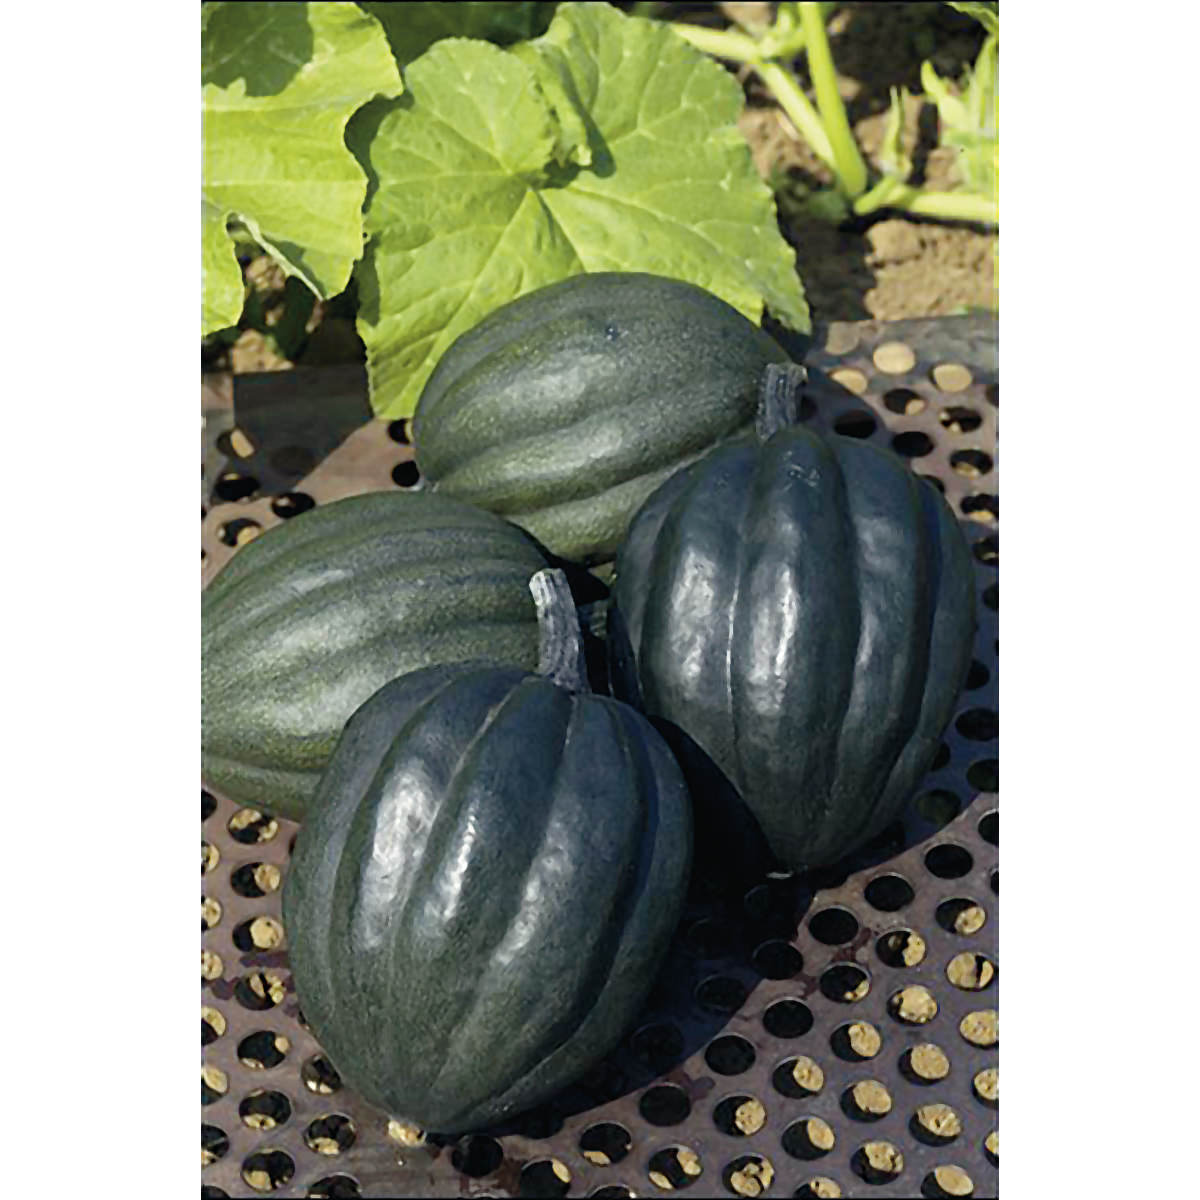 Table queen winter squash seeds ne seed for Table queen squash